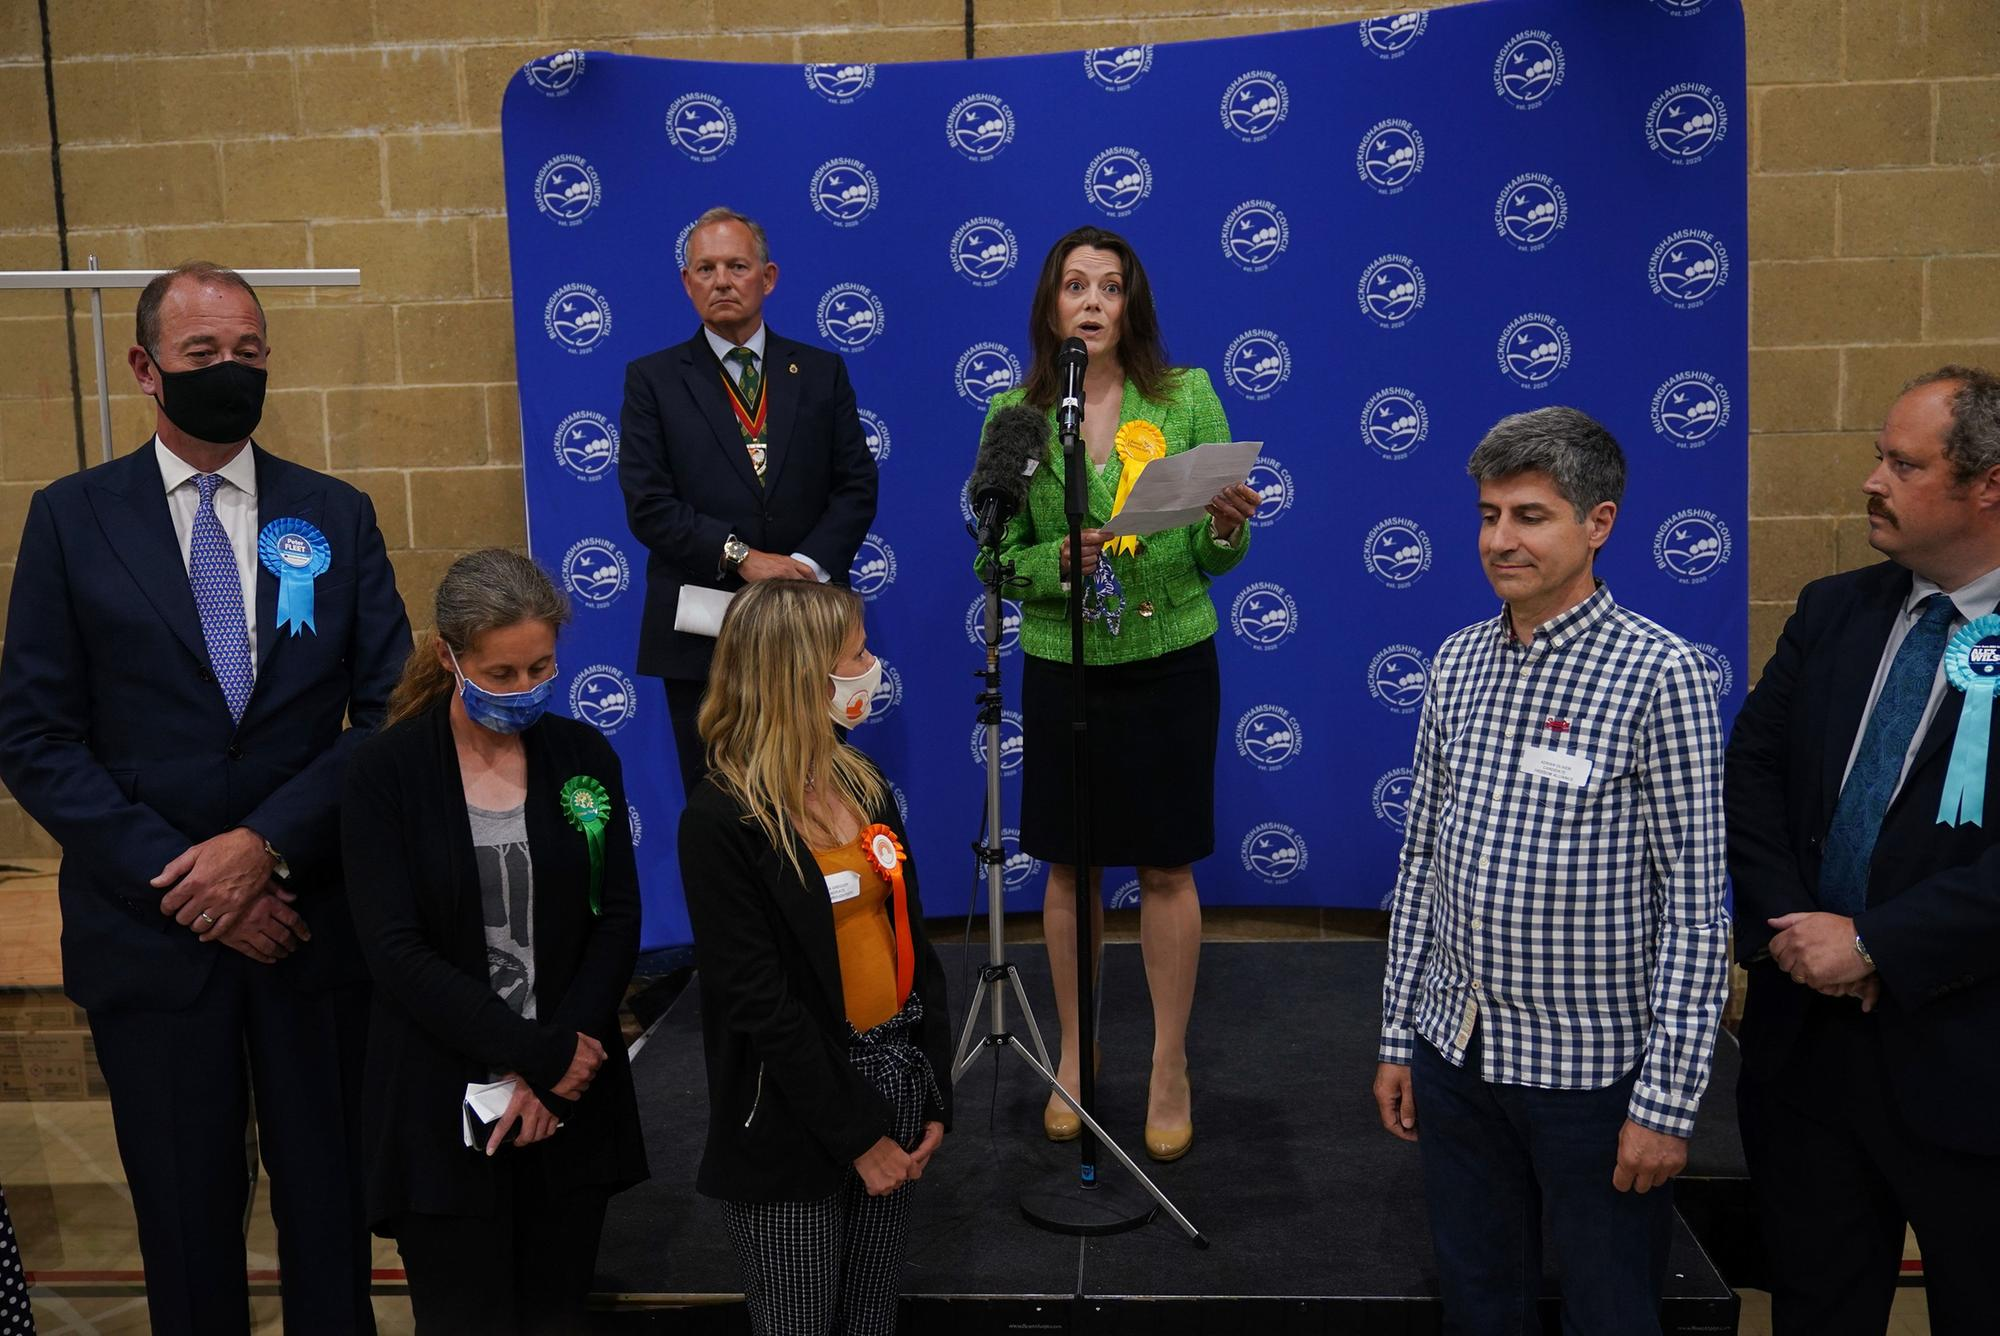 Lib Dem leader hails 'best-ever' by-election win